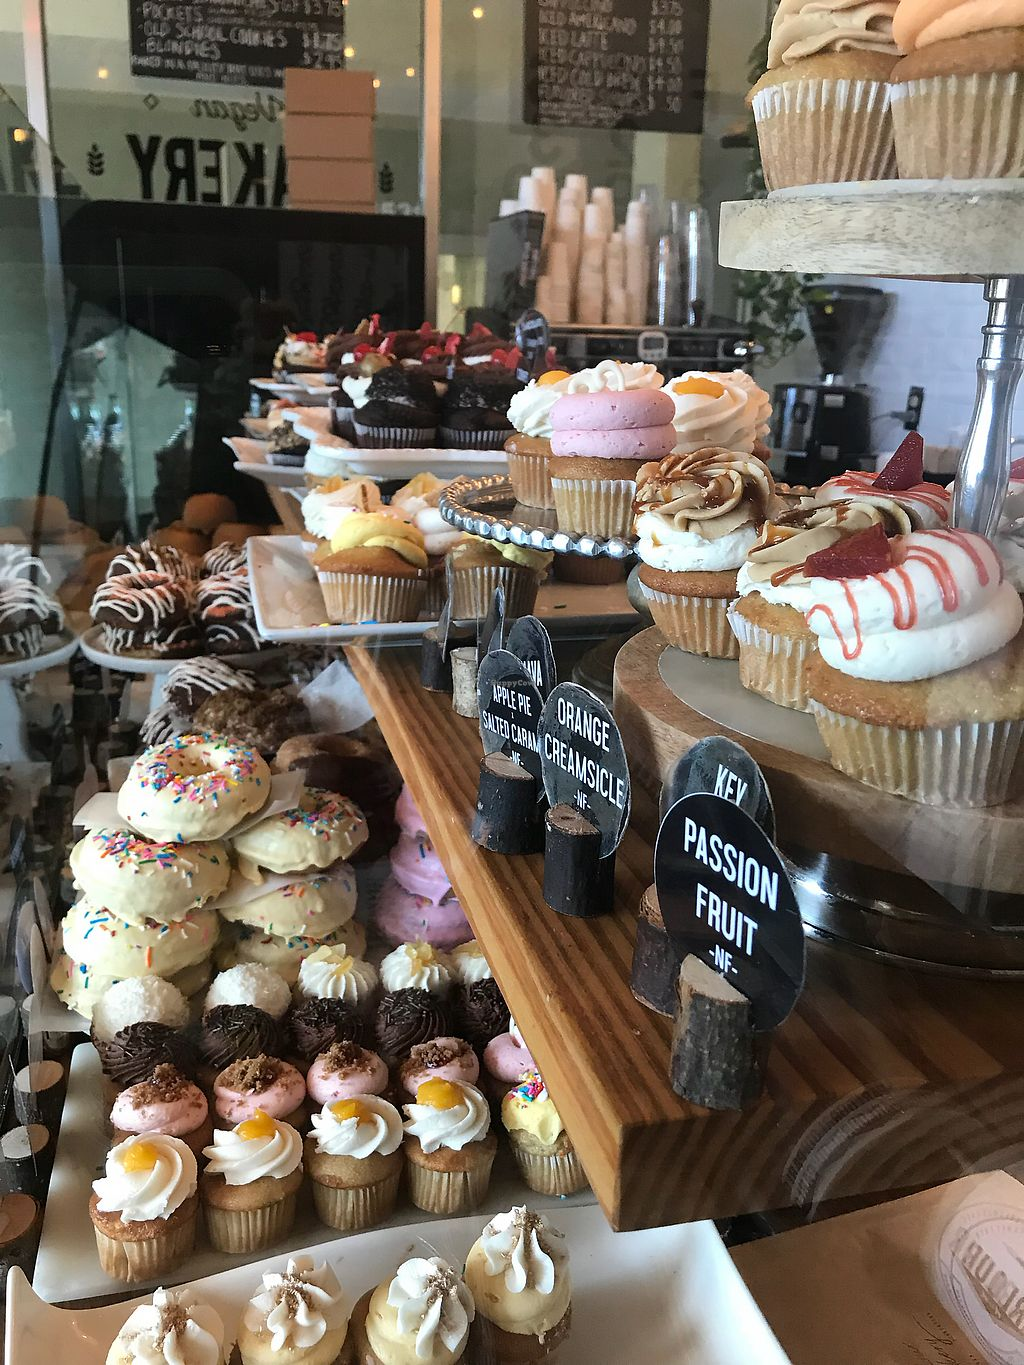 "Photo of Parlour Vegan Bakery  by <a href=""/members/profile/VictoriaLozada"">VictoriaLozada</a> <br/>Lovely treats!!  <br/> September 30, 2017  - <a href='/contact/abuse/image/58475/309949'>Report</a>"